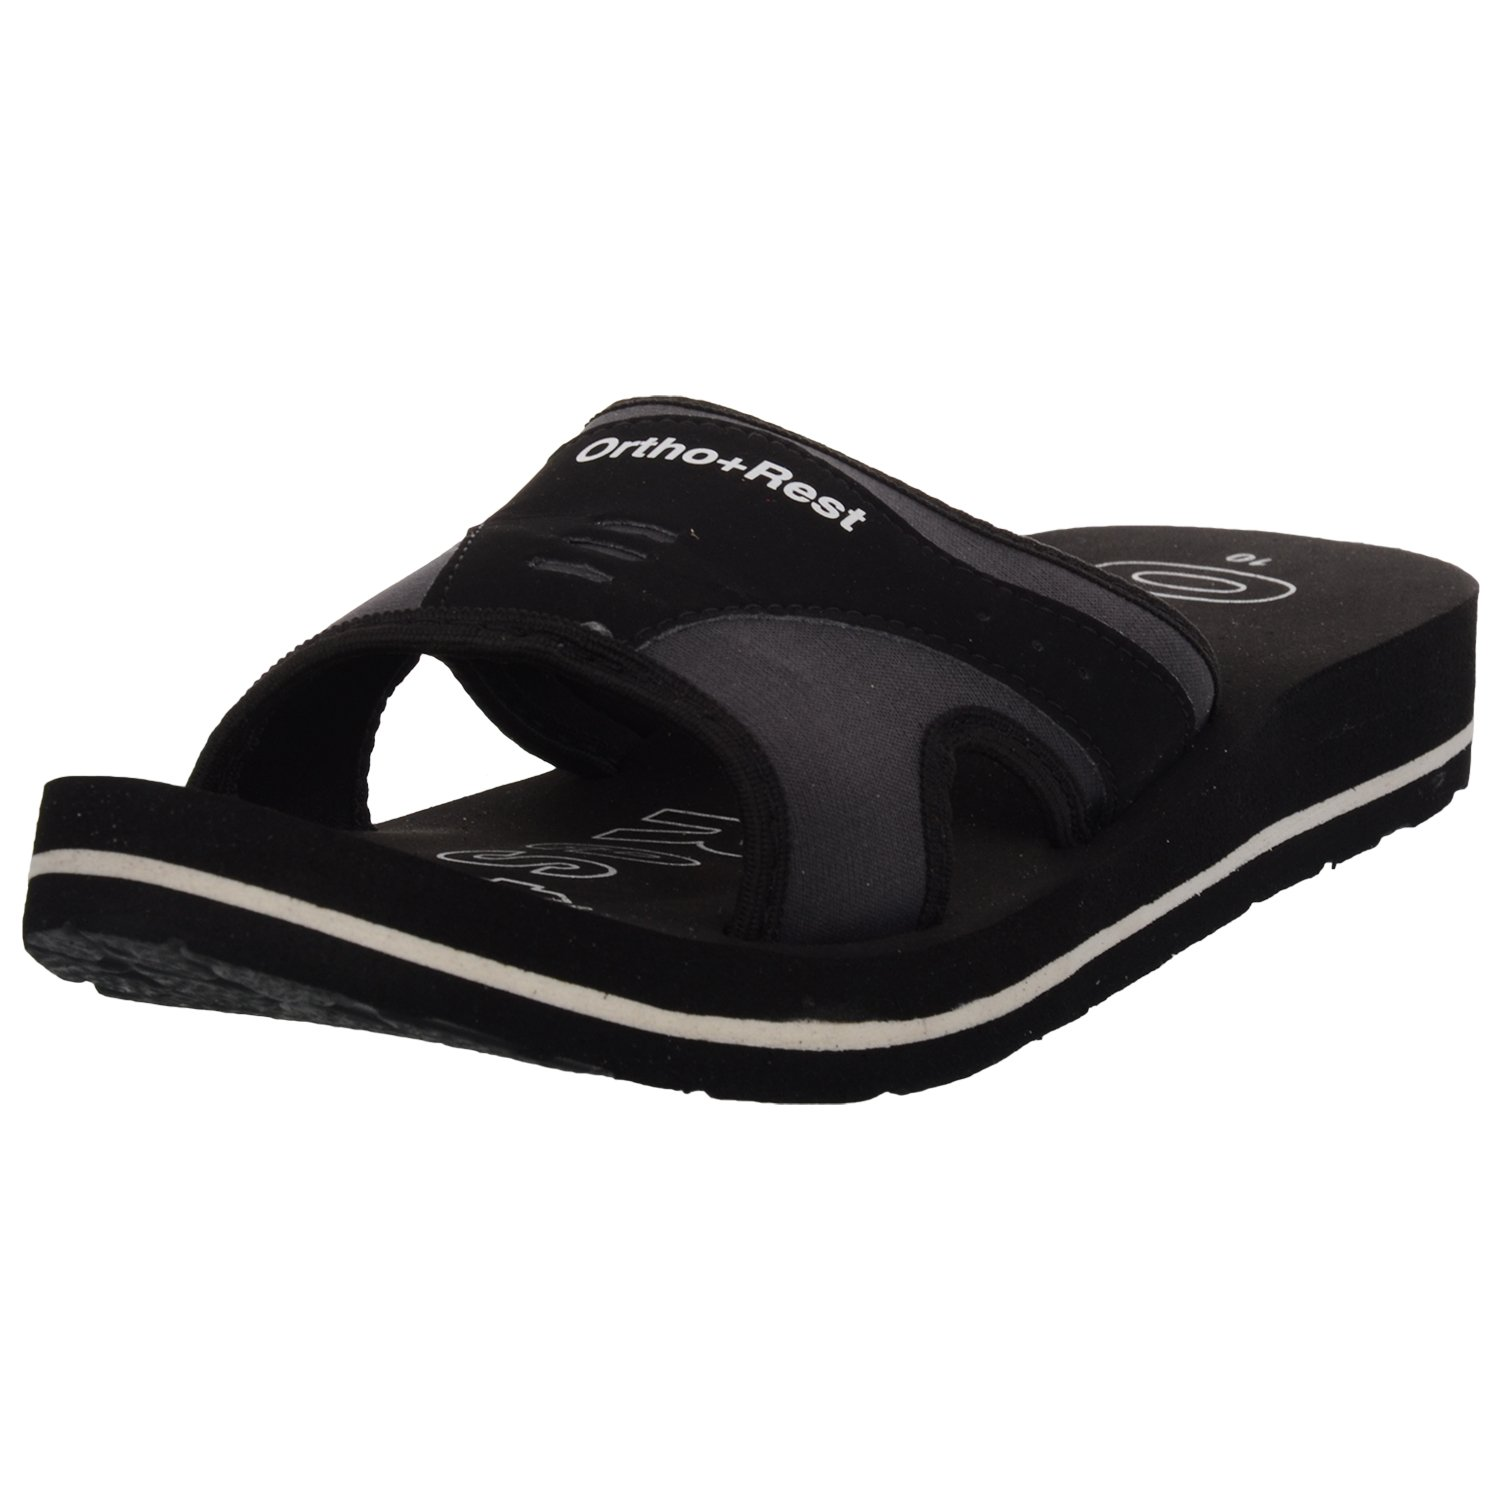 bd7ed38d02beca Ortho + Rest Black Slippers for Men: Buy Online at Low Prices in India -  Amazon.in